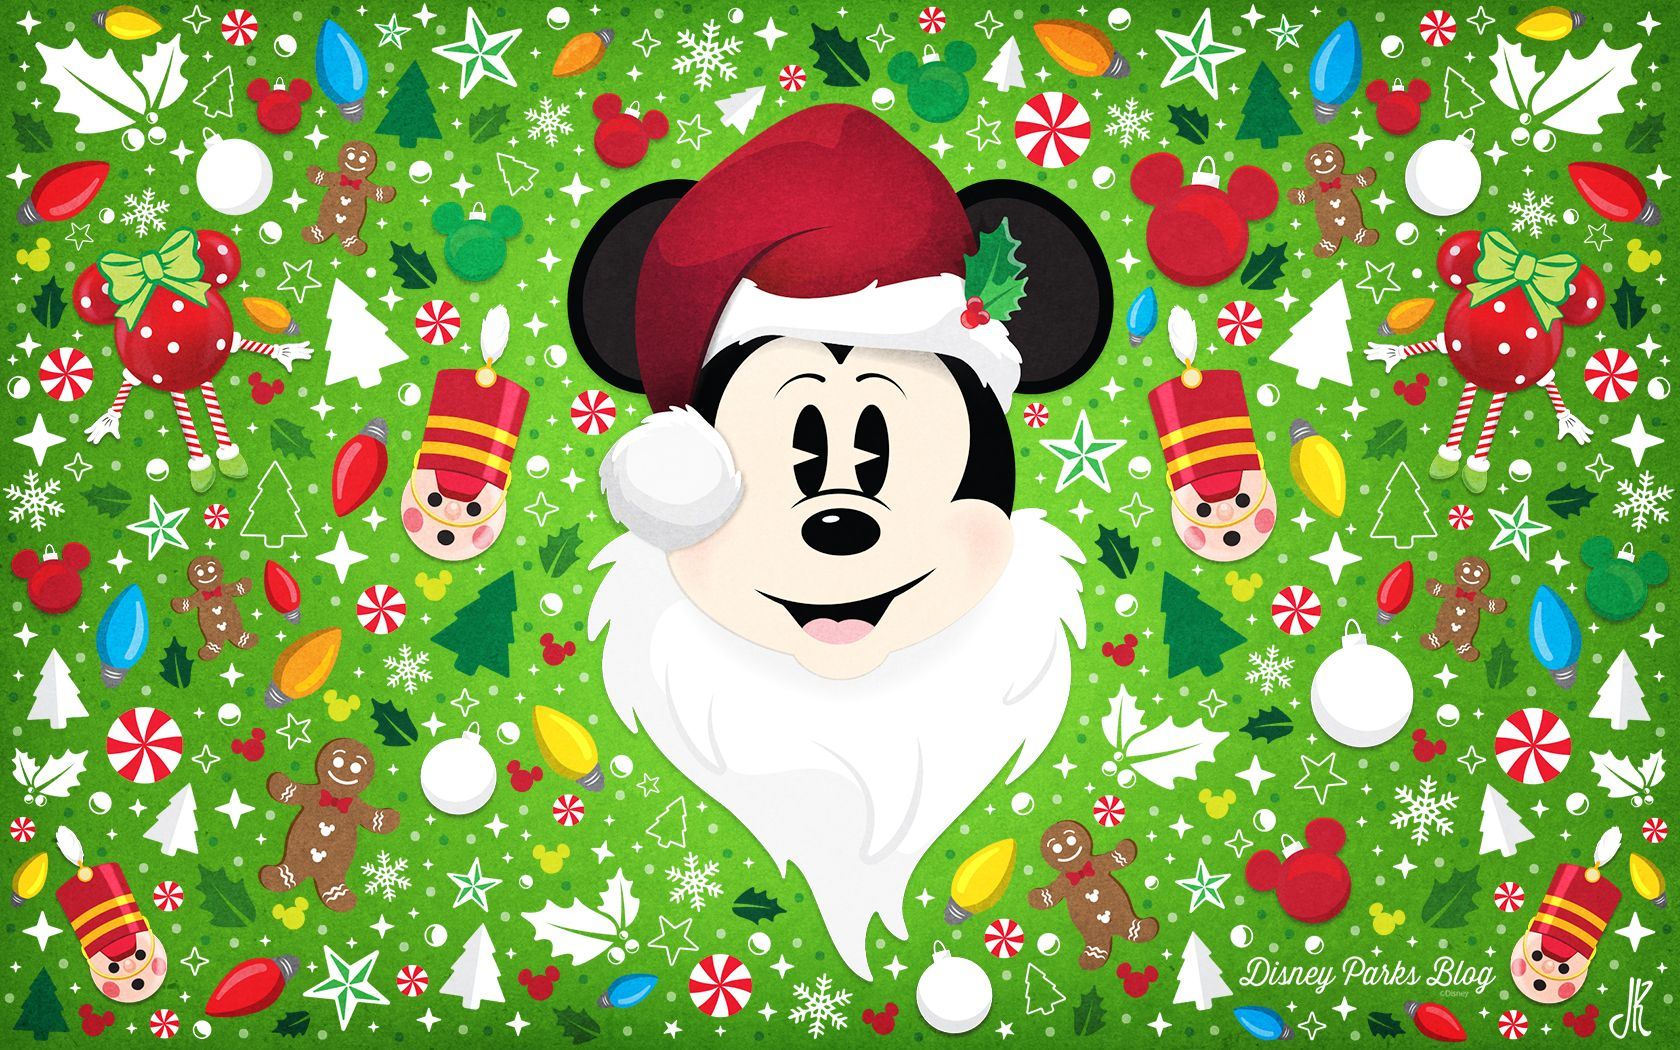 Disney Christmas Wallpapers - Top Free